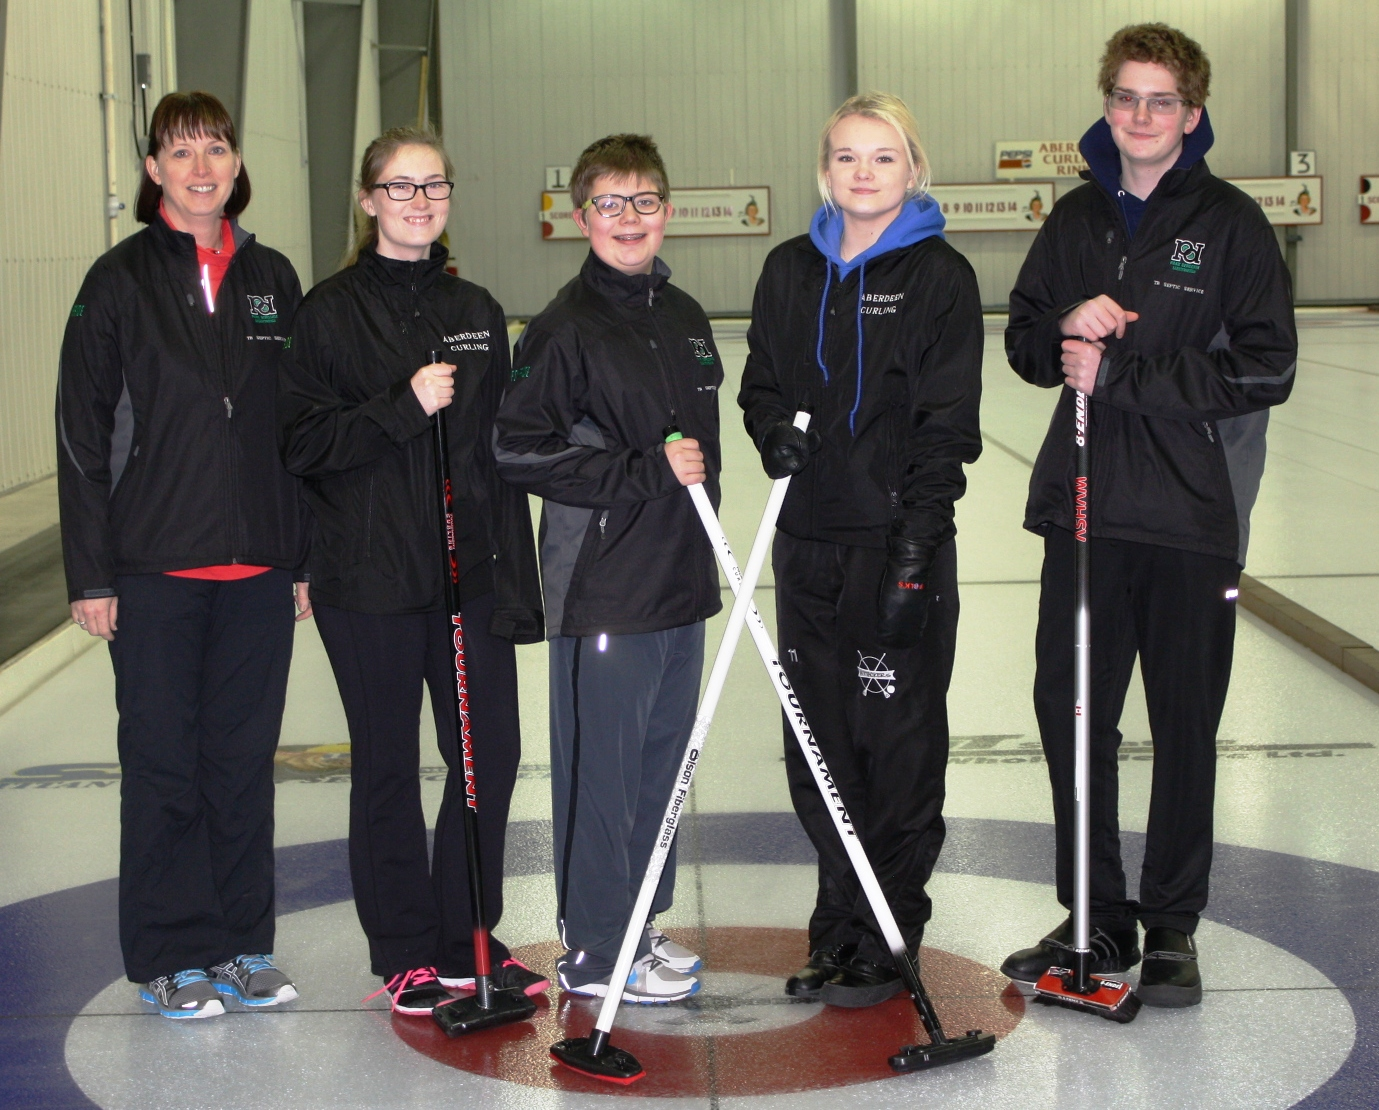 Aberdeen Sr. Mixed Team Thank-you to Park Derochie Coatings Ltd. and TB Septic Services for supporting our jacket purchase!